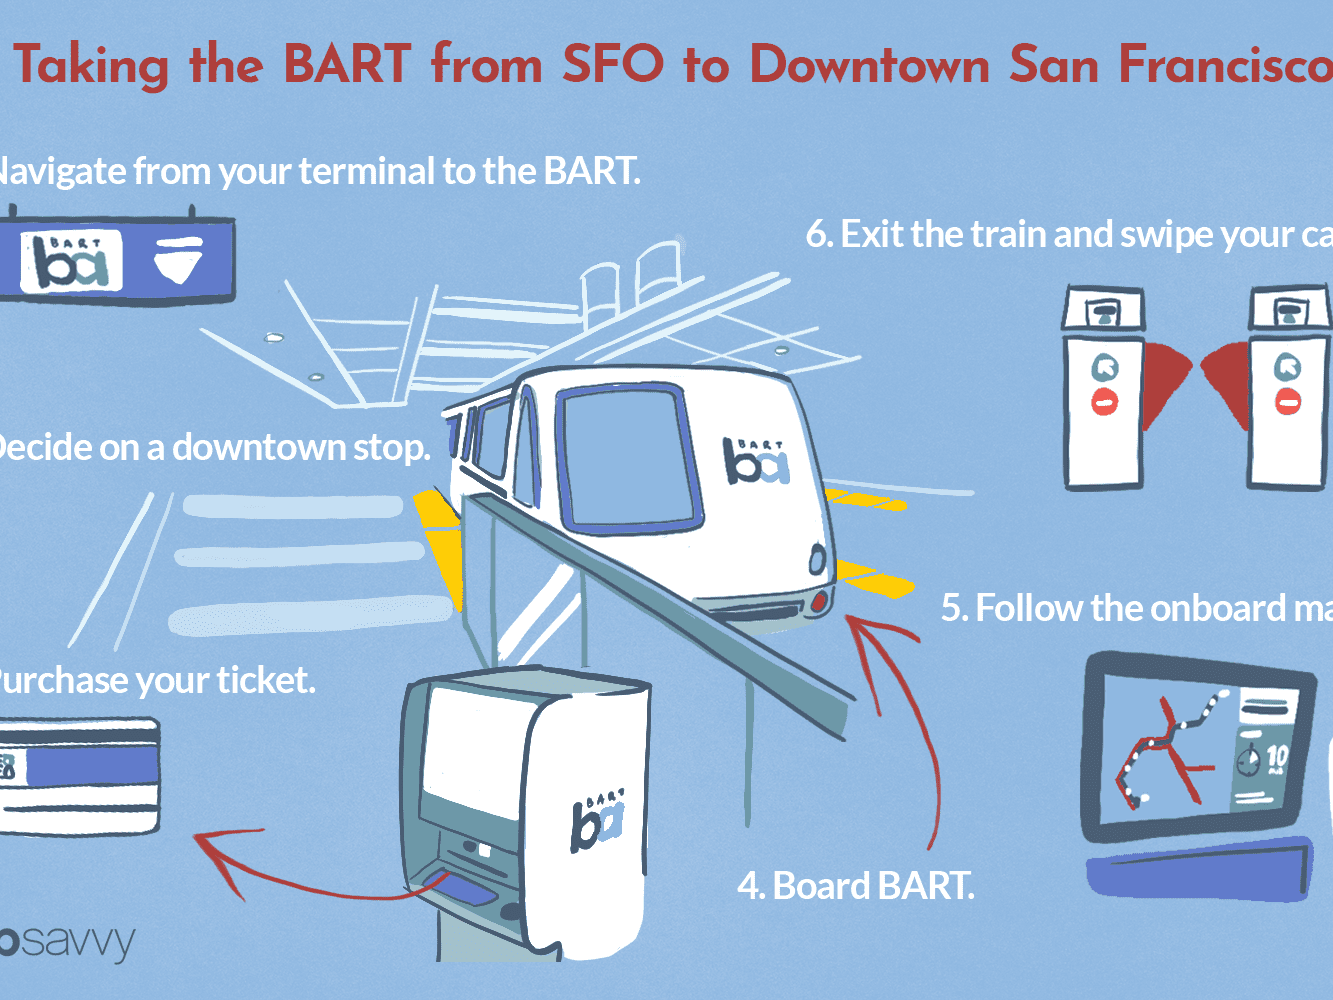 How to Take BART from SFO to Downtown San Francisco